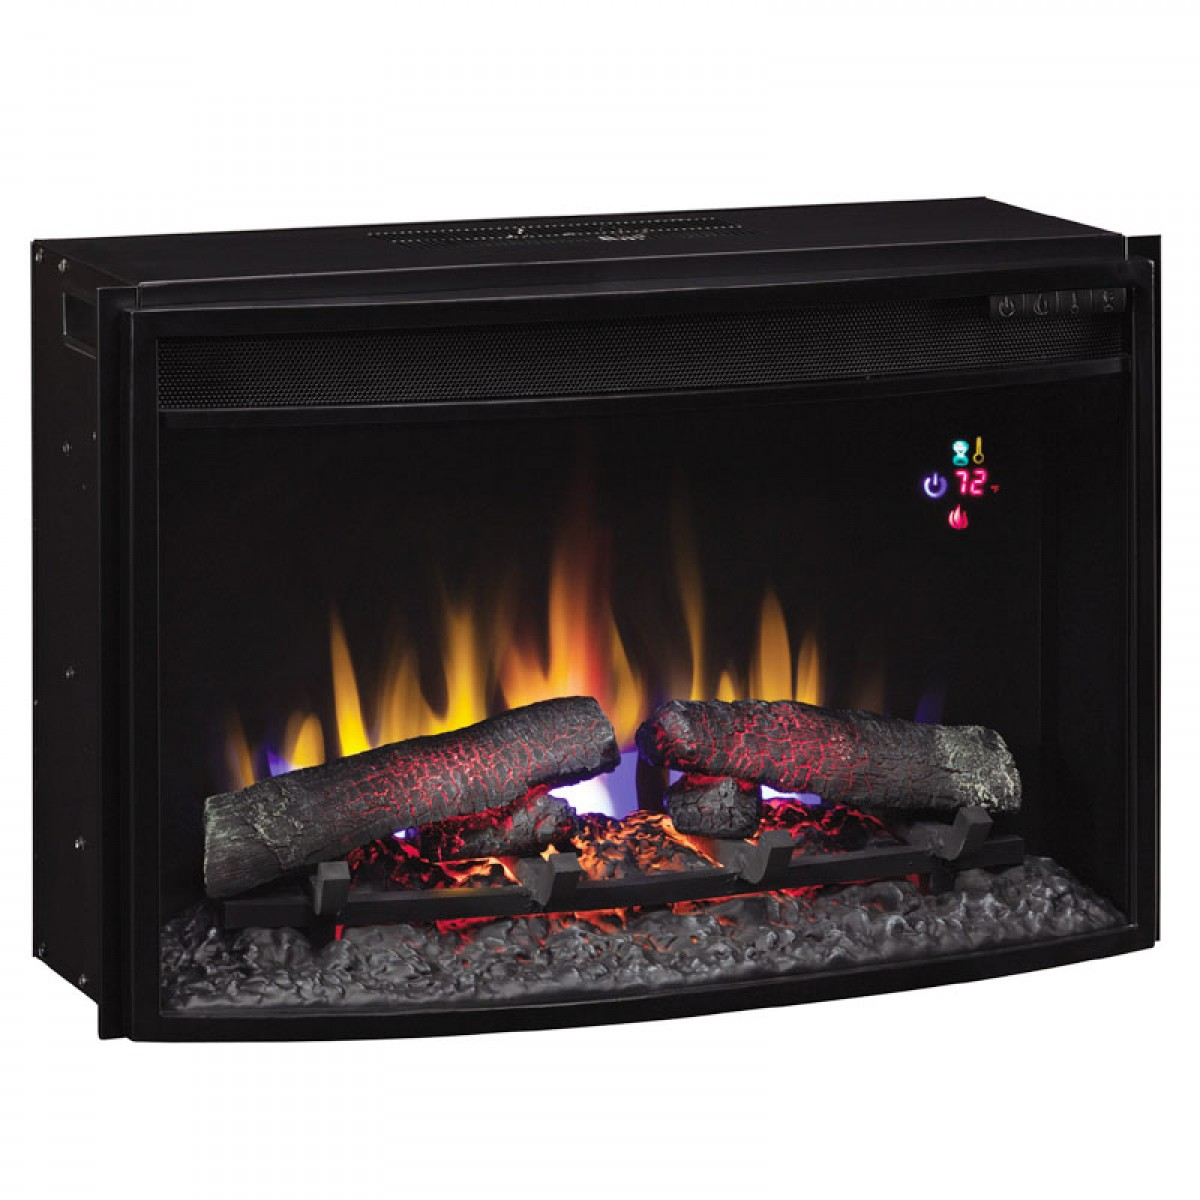 Classic Flame 25ef031grp 25 Curved Spectrafi Plus Electric Insert With Safer Plugat Ibuyfireplaces